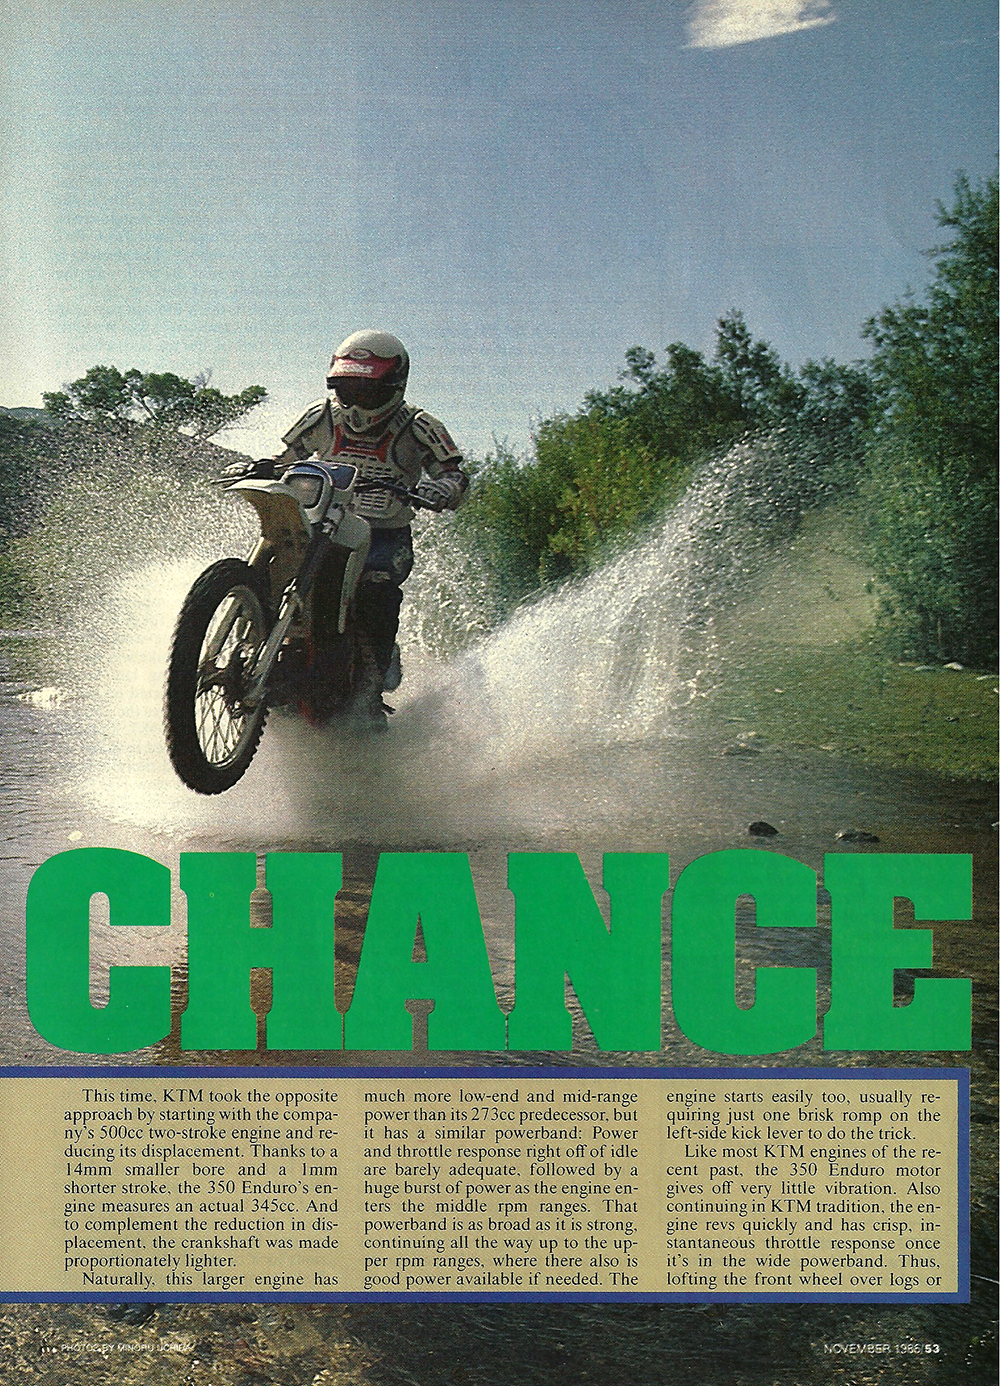 1986 KTM 350 enduro road test 02.jpg